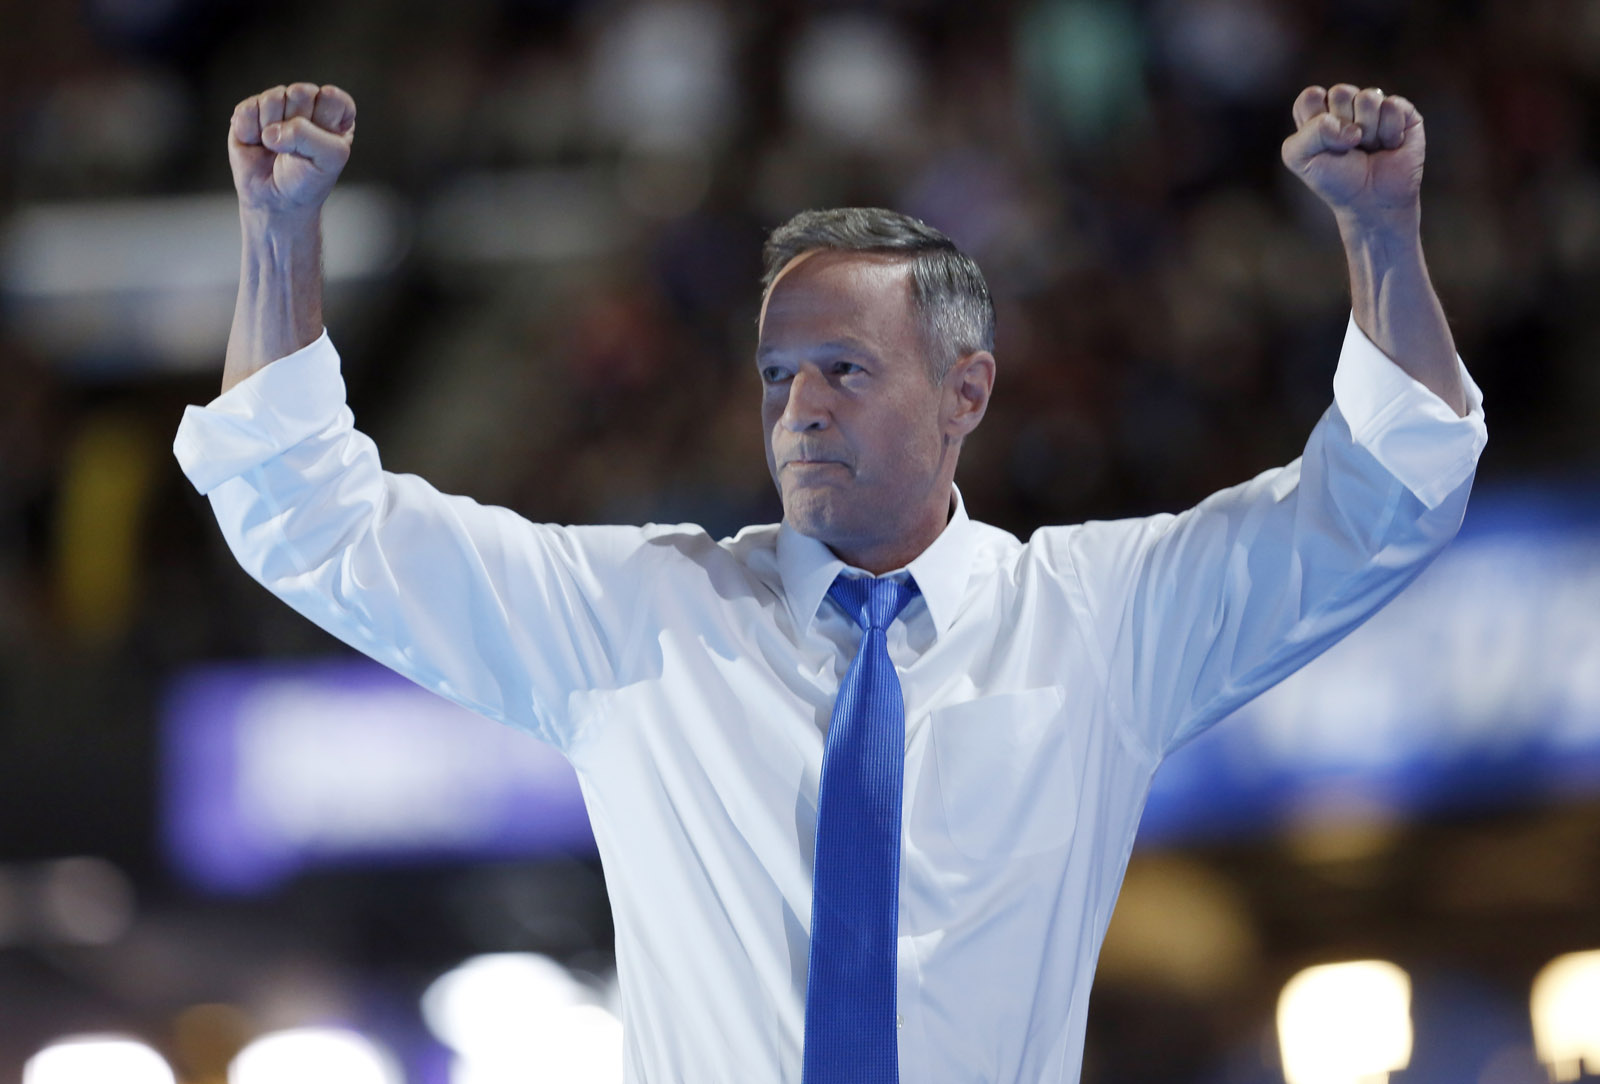 Former Democratic presidential candidate, former Maryland Gov. Martin O'Malley, pumps his arms after speaking at the third day session of the Democratic National Convention in Philadelphia, Wednesday, July 27, 2016. (AP Photo/Carolyn Kaster)